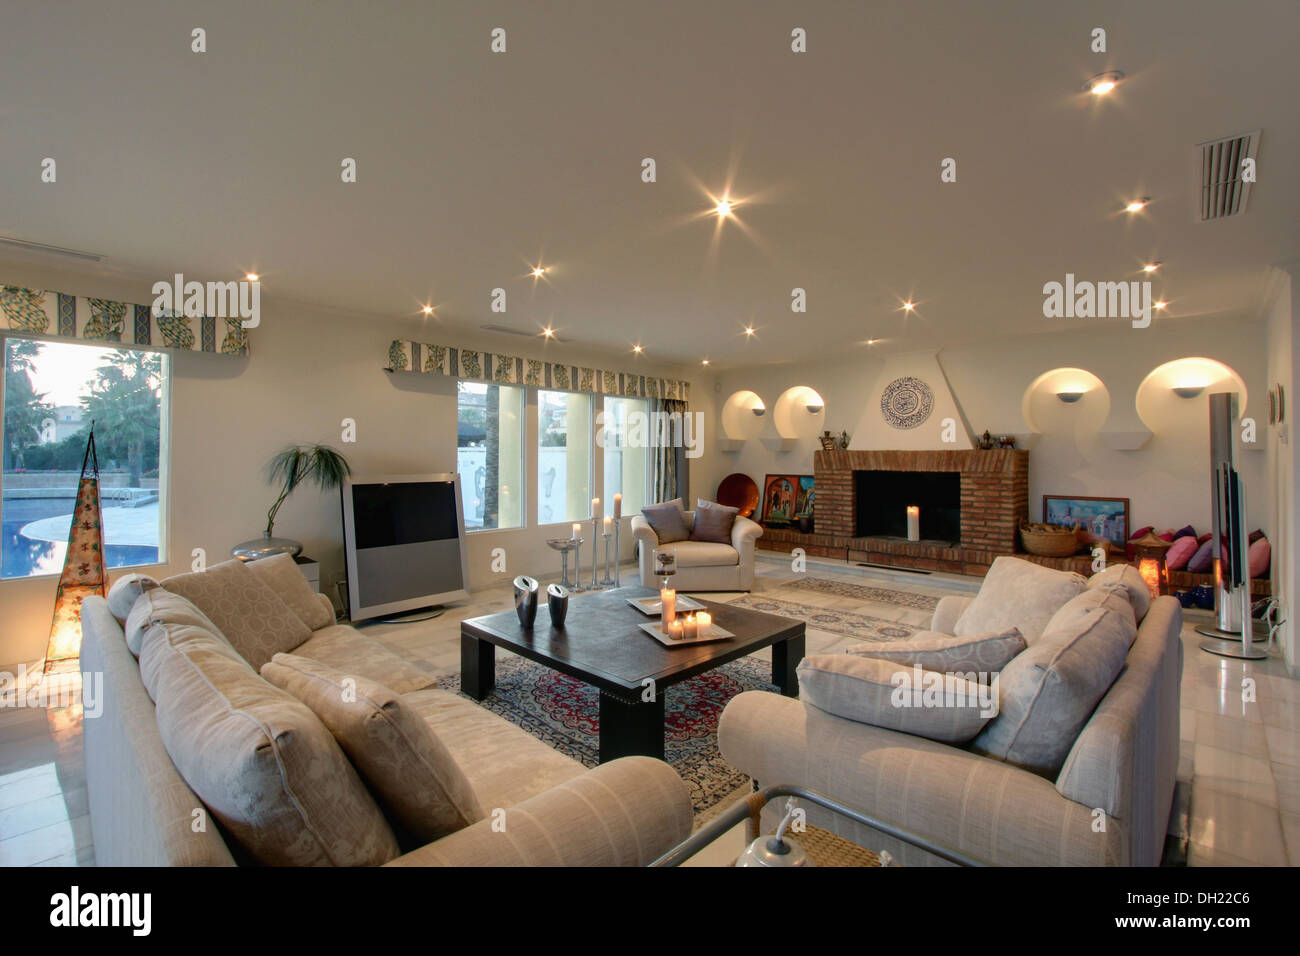 Beige Sofas And Low Table In Modern Living Room With Large Television In  Well Lit Living Room Of New Build Spanish Villa